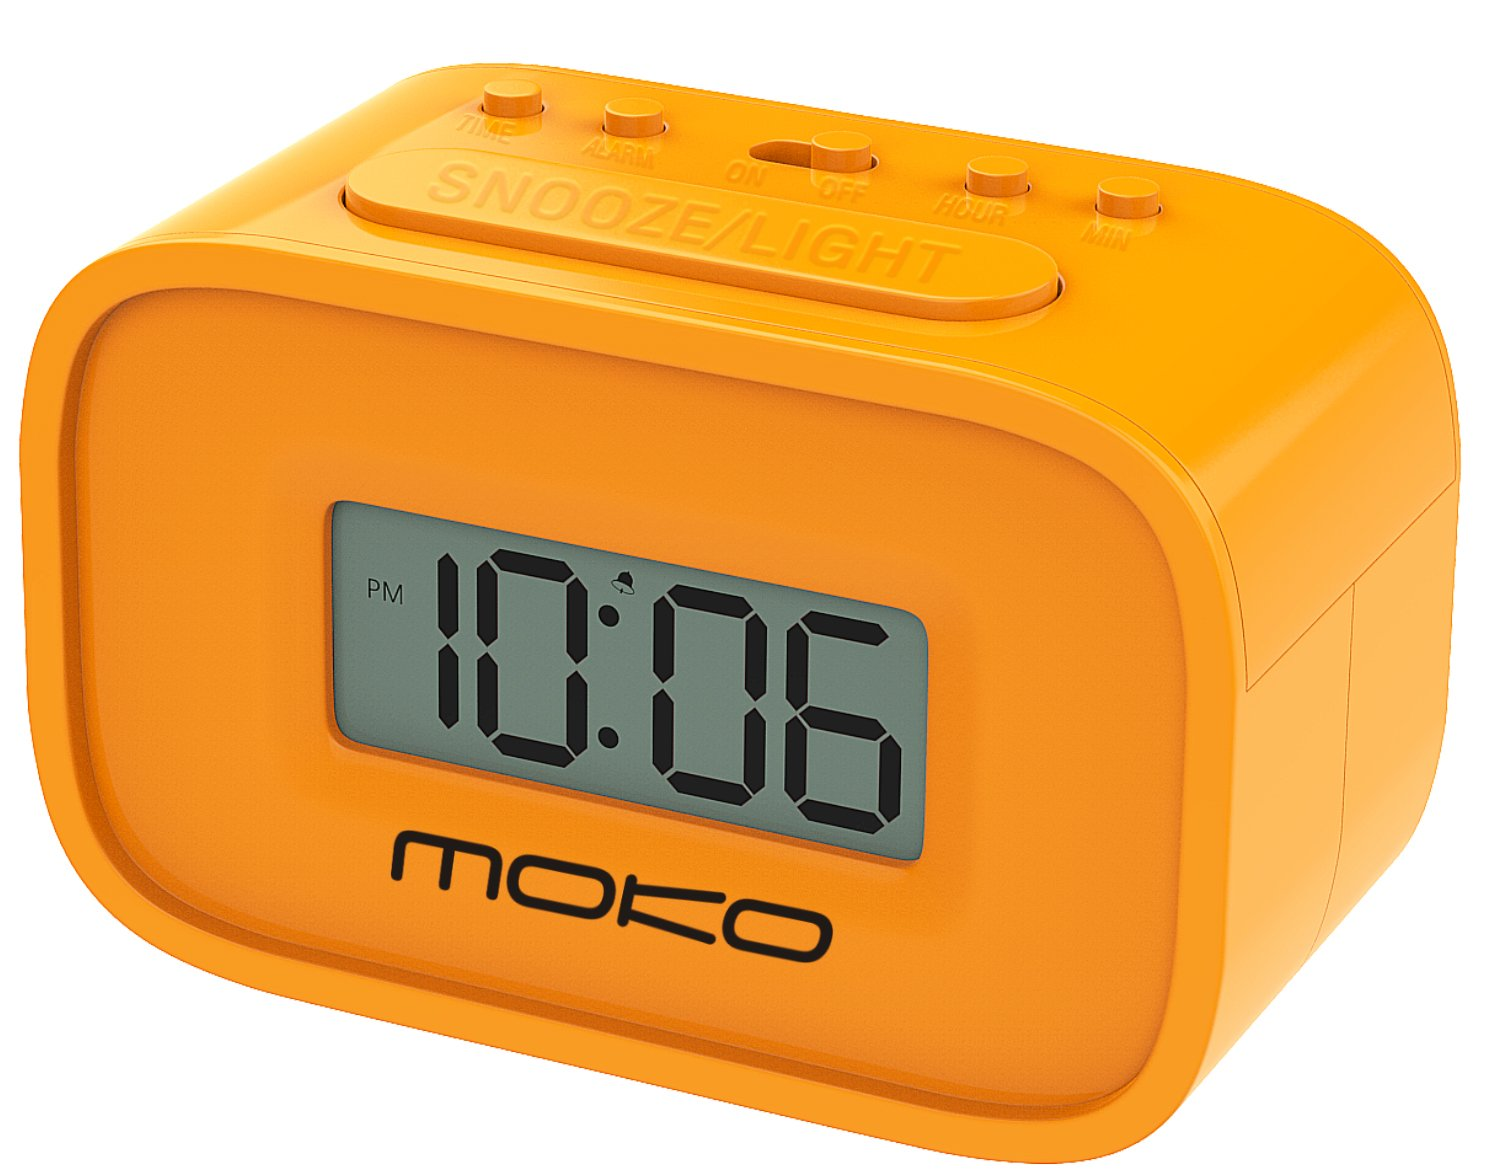 MoKo Digital Alarm Clock, Wake Up Alarm Table Bedside Mini Clock LCD Display Battery Powered Small Clock with Snooze Function/Backlight for Kids Bedroom - Orange